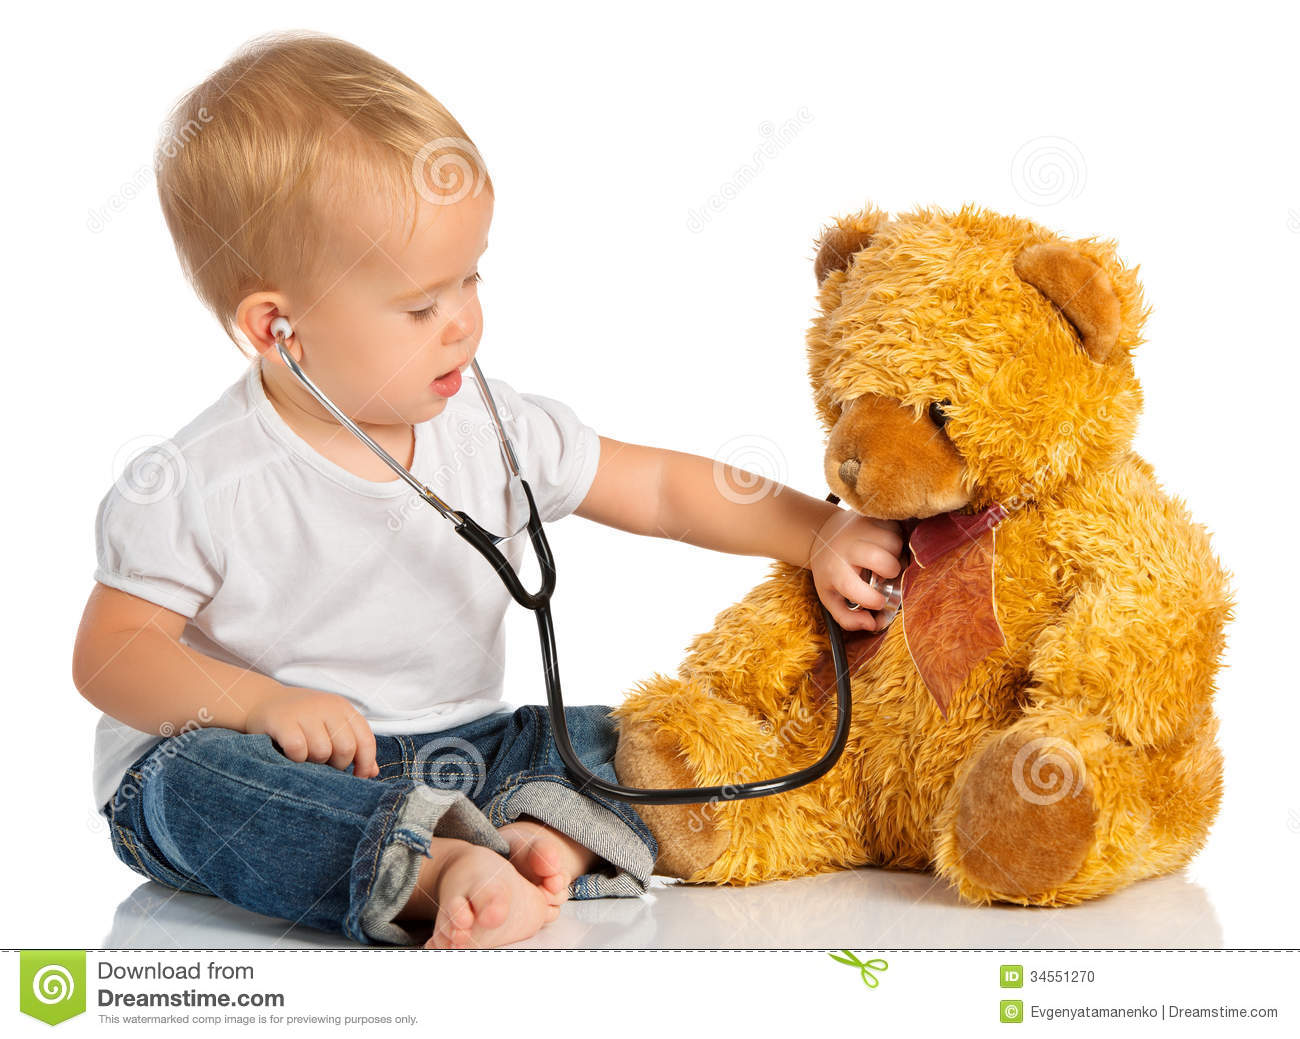 Baby plays in doctor toy bear, stethoscope